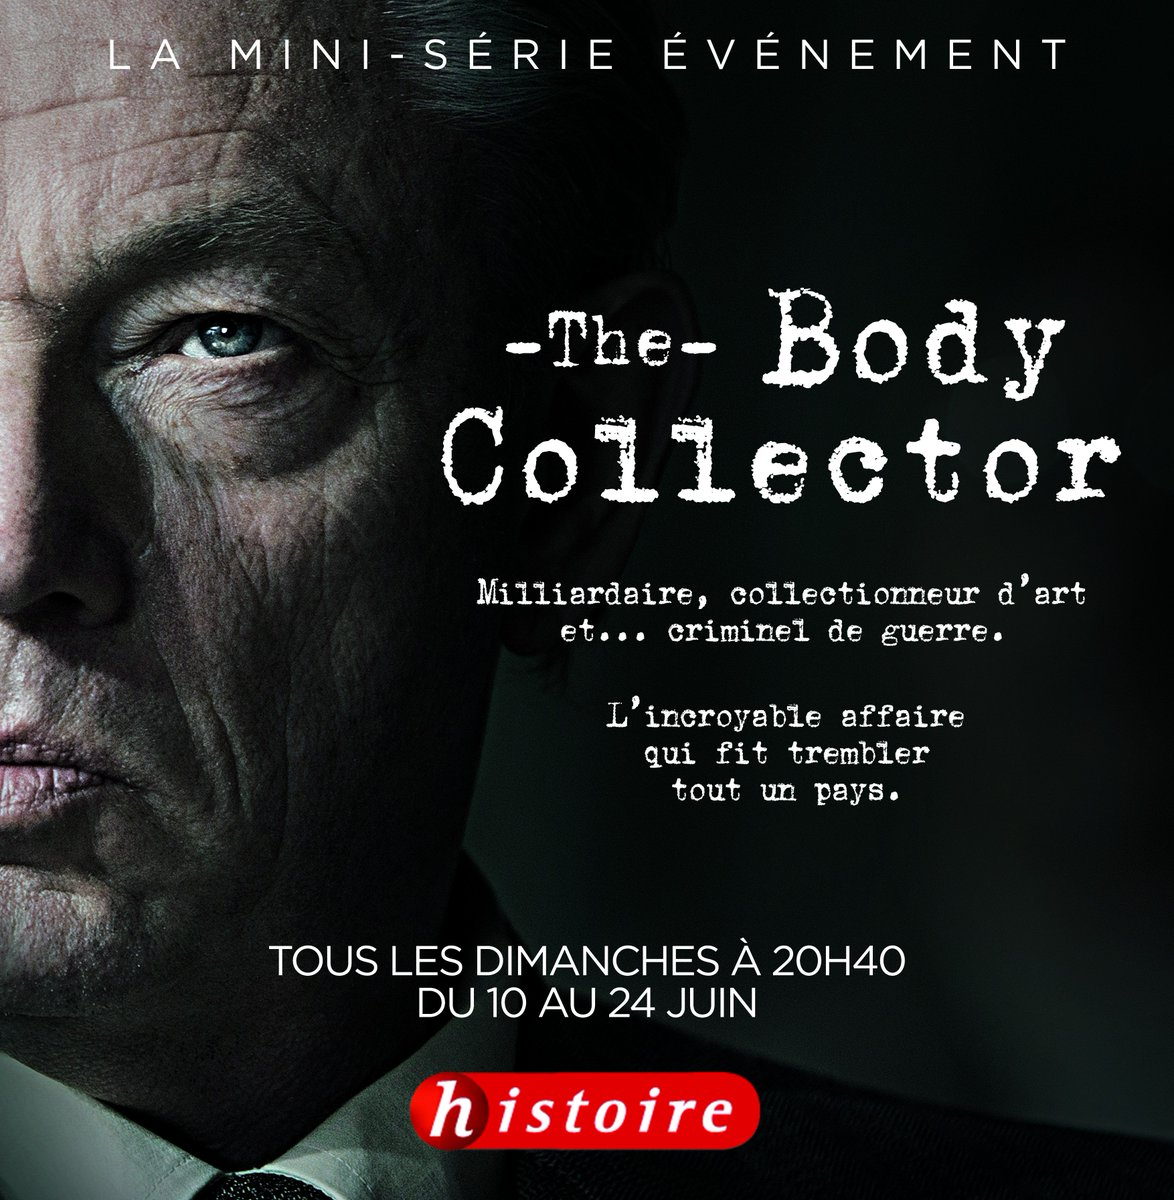 Tf1 Pro On Twitter Inedit Milliardaire Collectionneur D